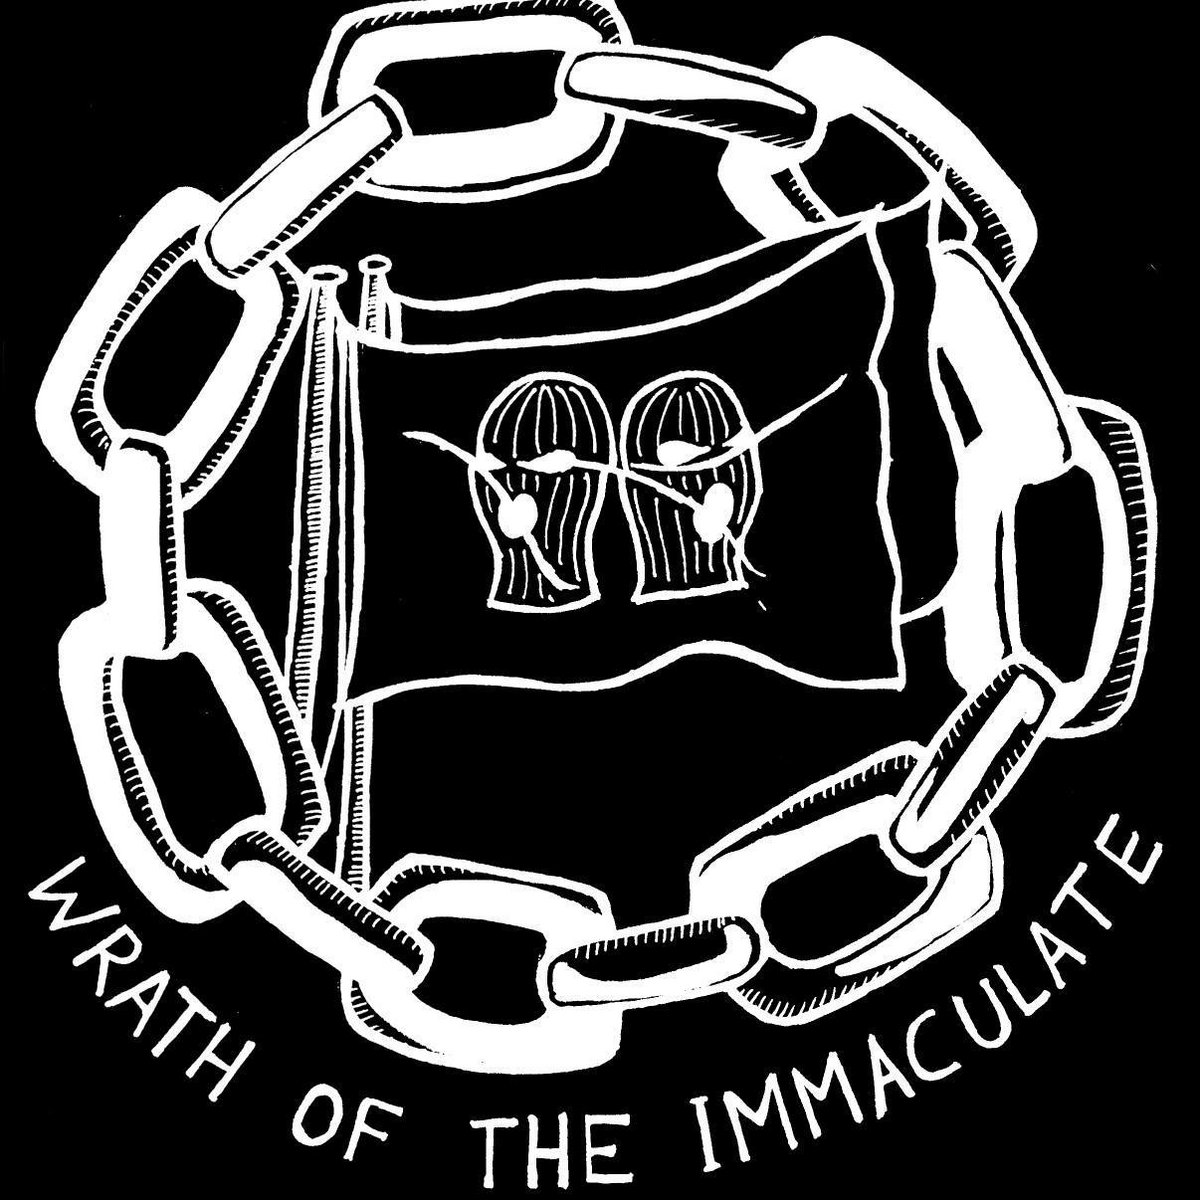 Wrath of the immaculate life lair regret records by xlairx buycottarizona